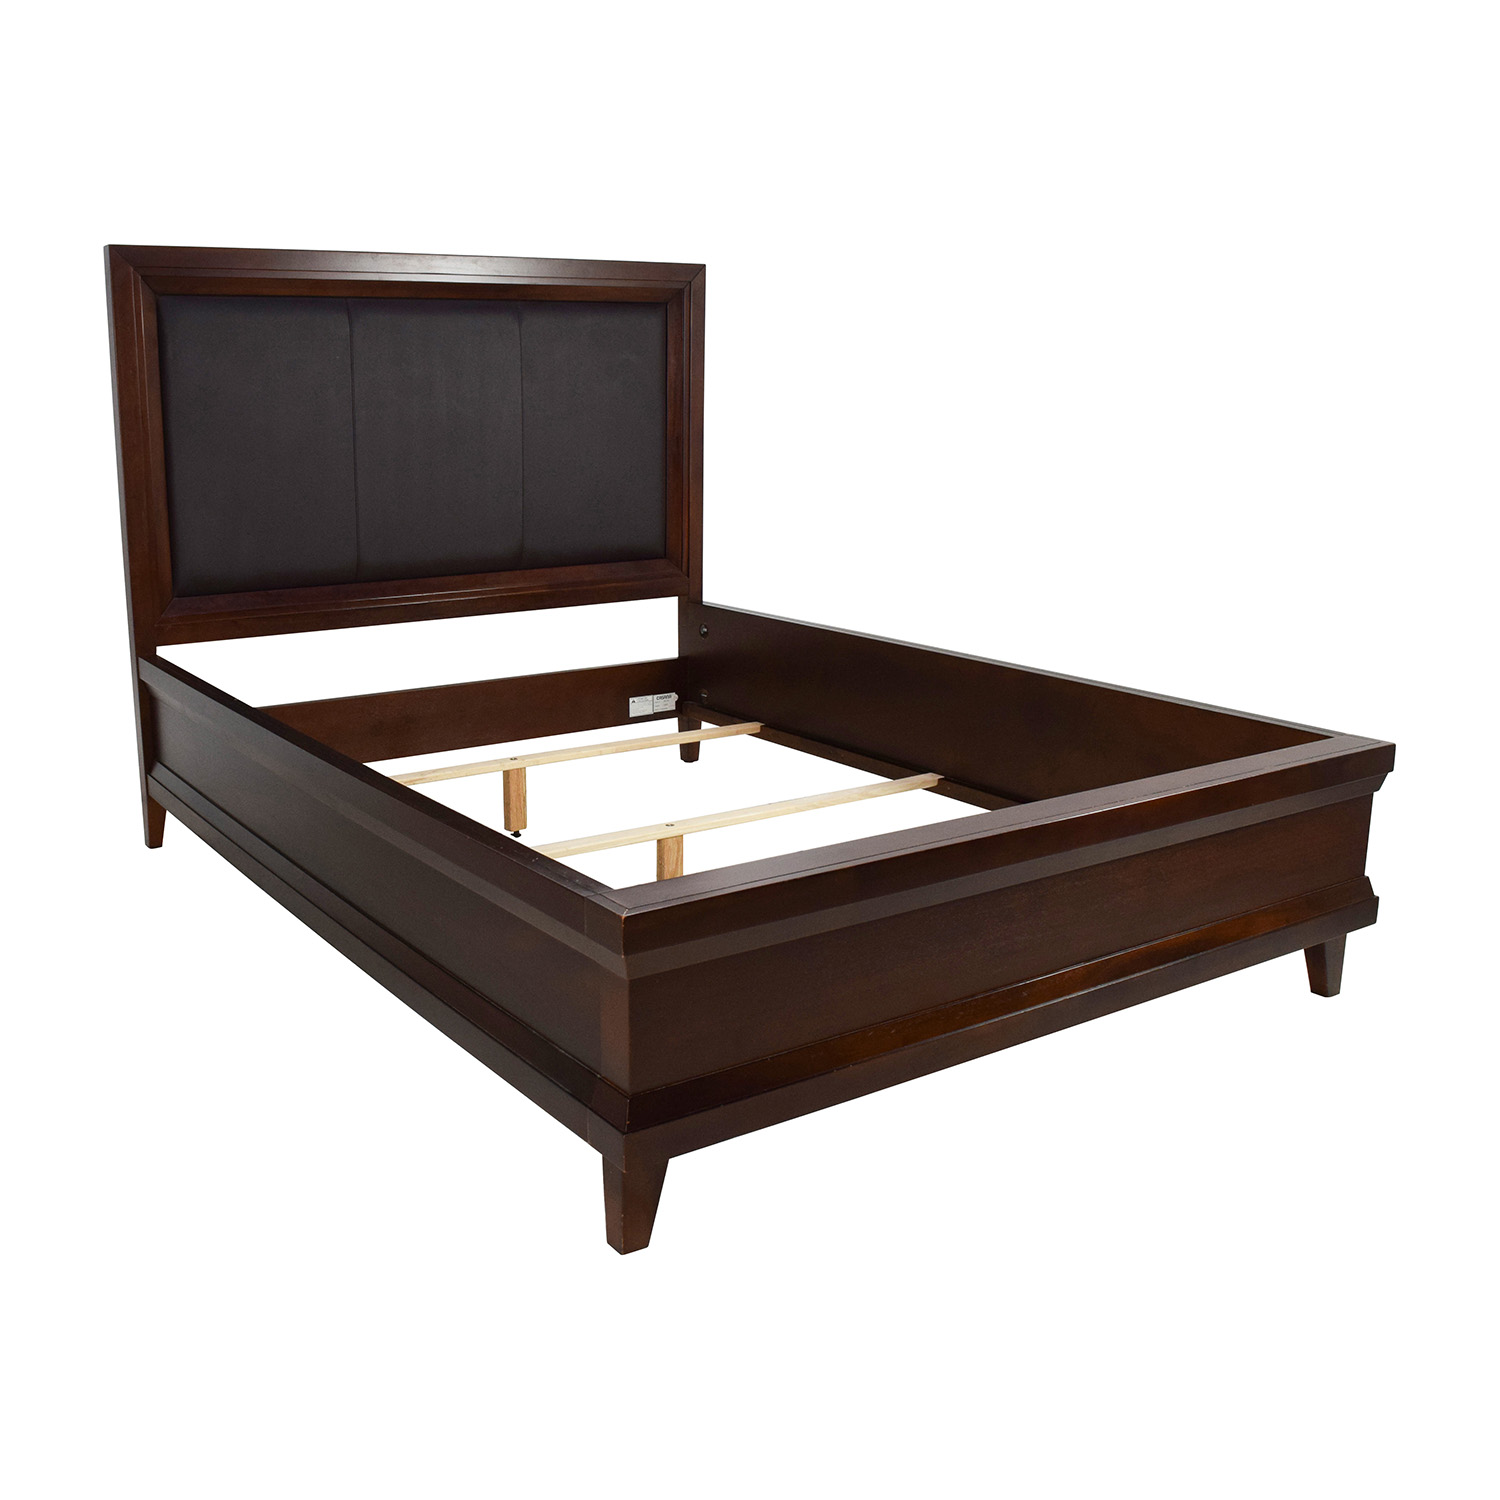 75 off raymour and flanigan raymour flanigan vista 16930 | used raymour flanigan vista queen bed with leather headboard